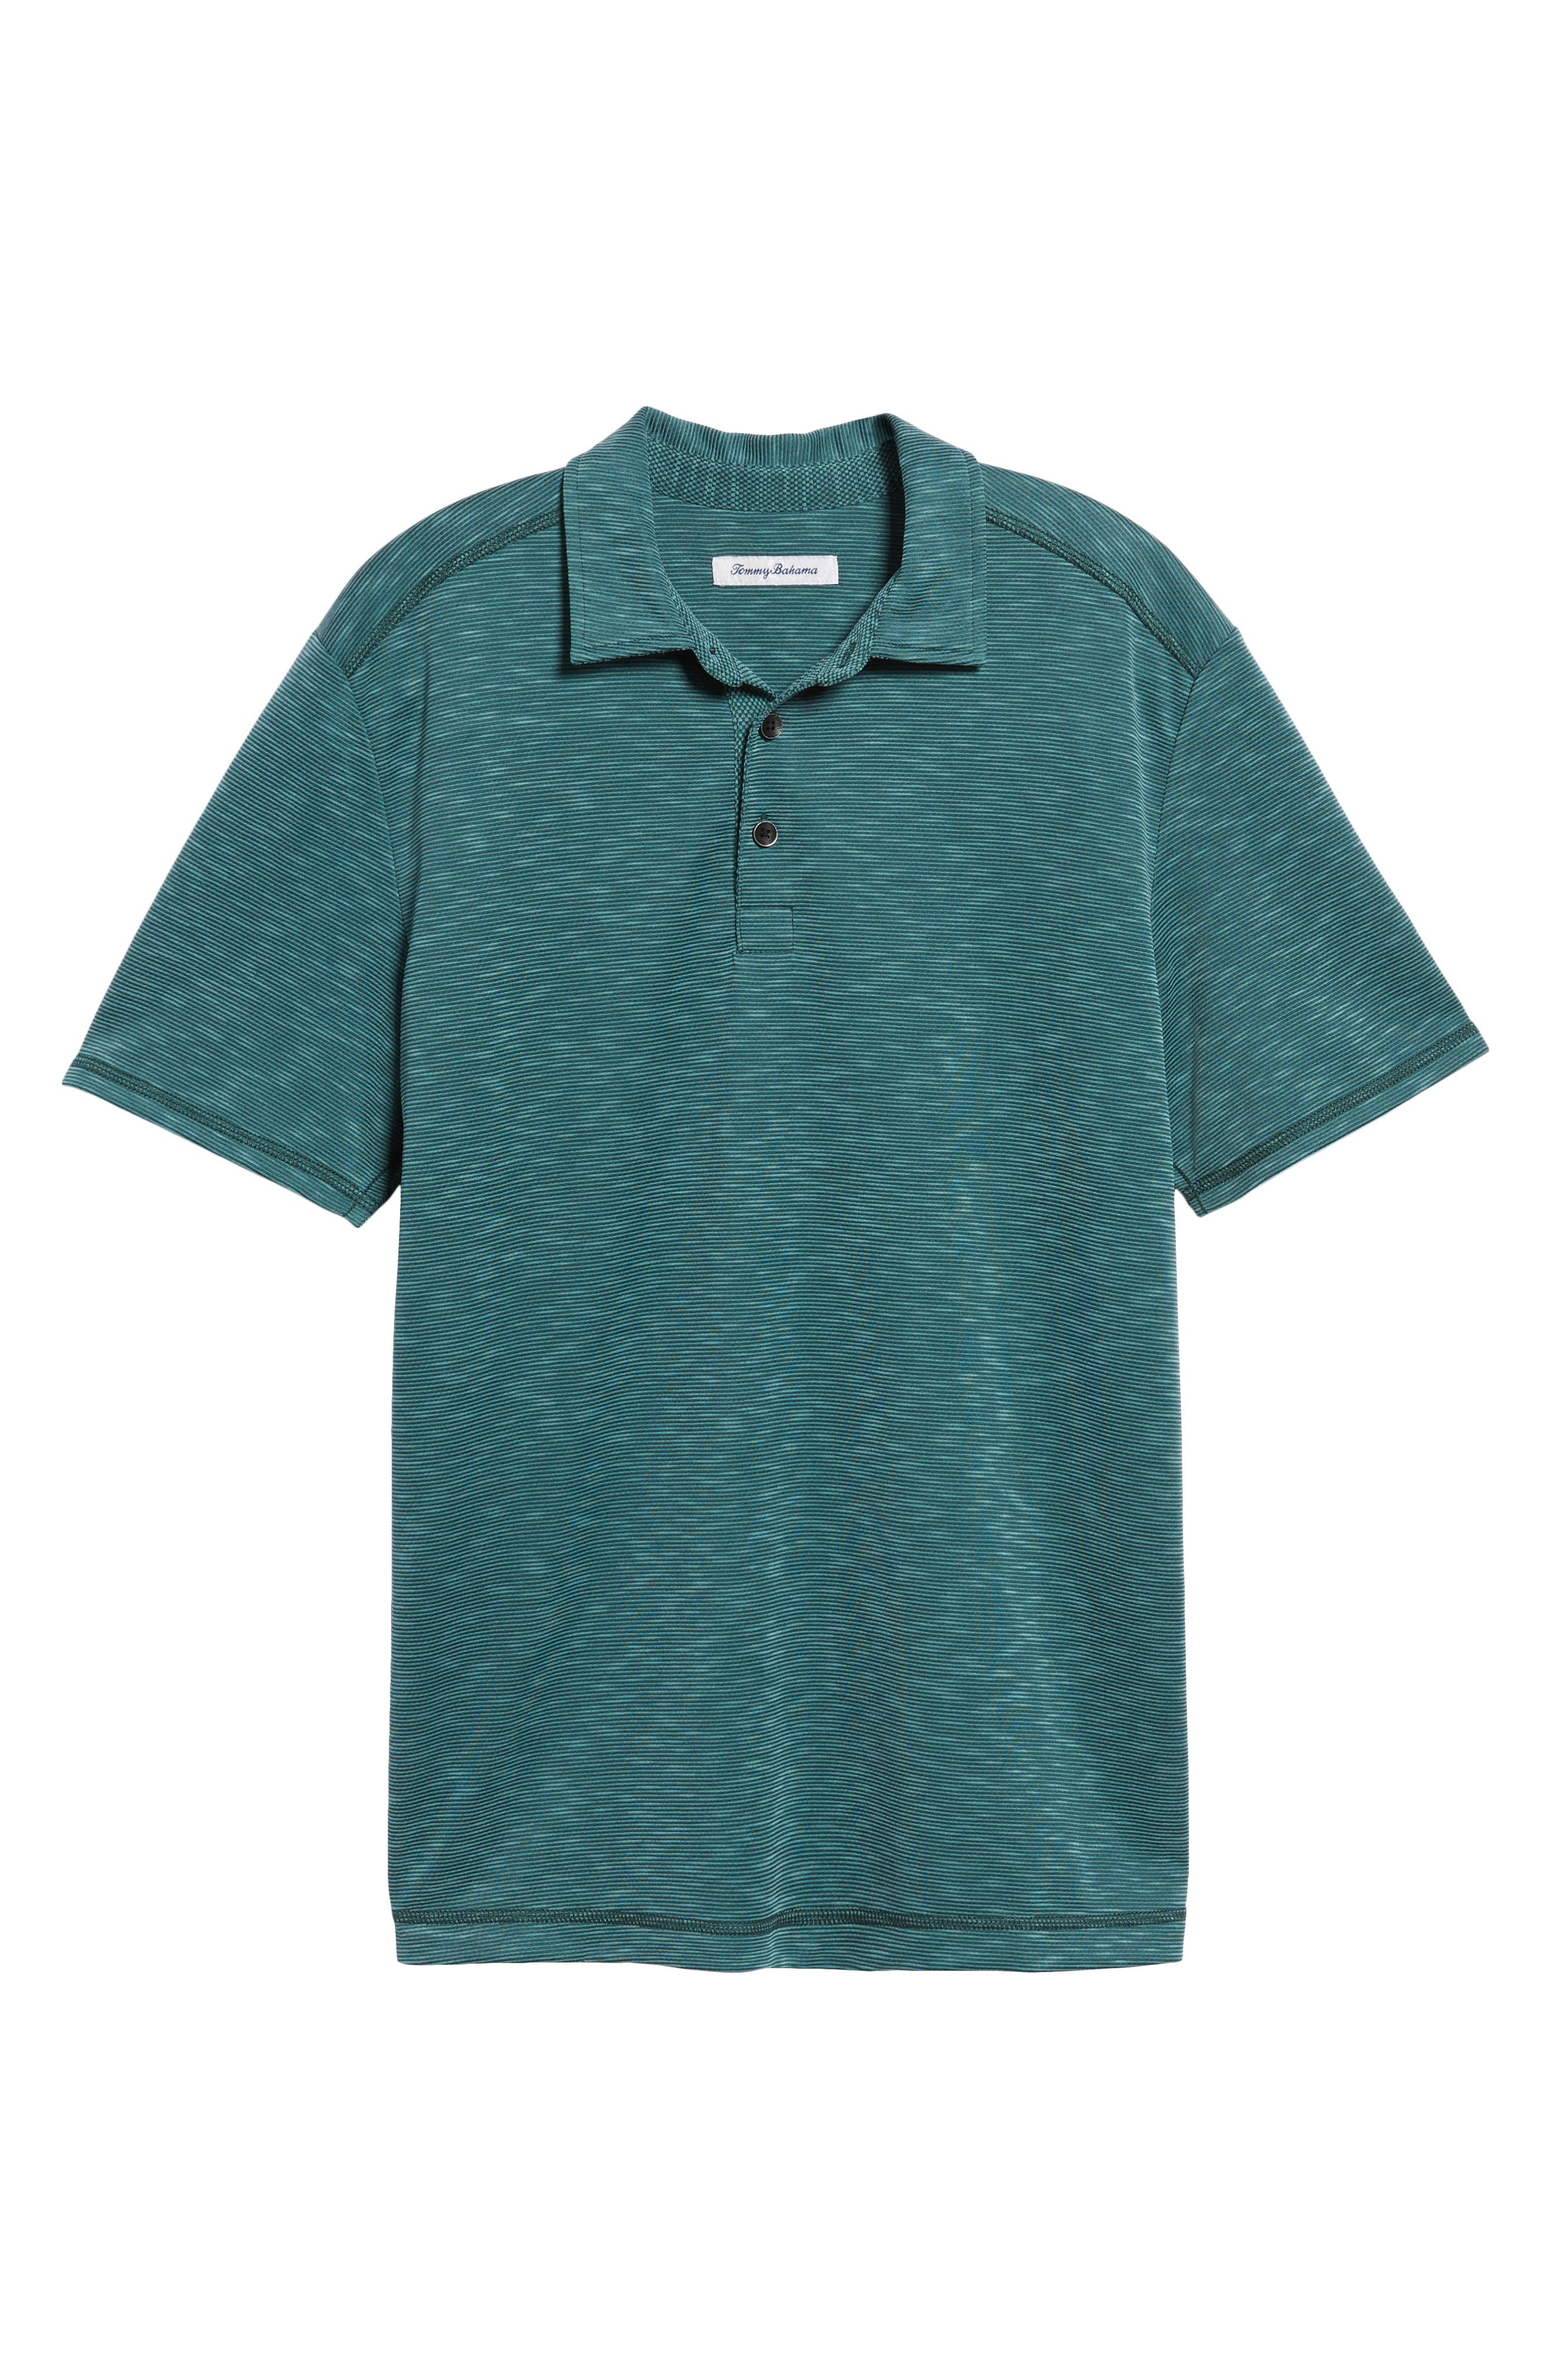 New Double Tempo Spectator Jersey Polo,                             Alternate thumbnail 6, color,                             FOREST GREEN